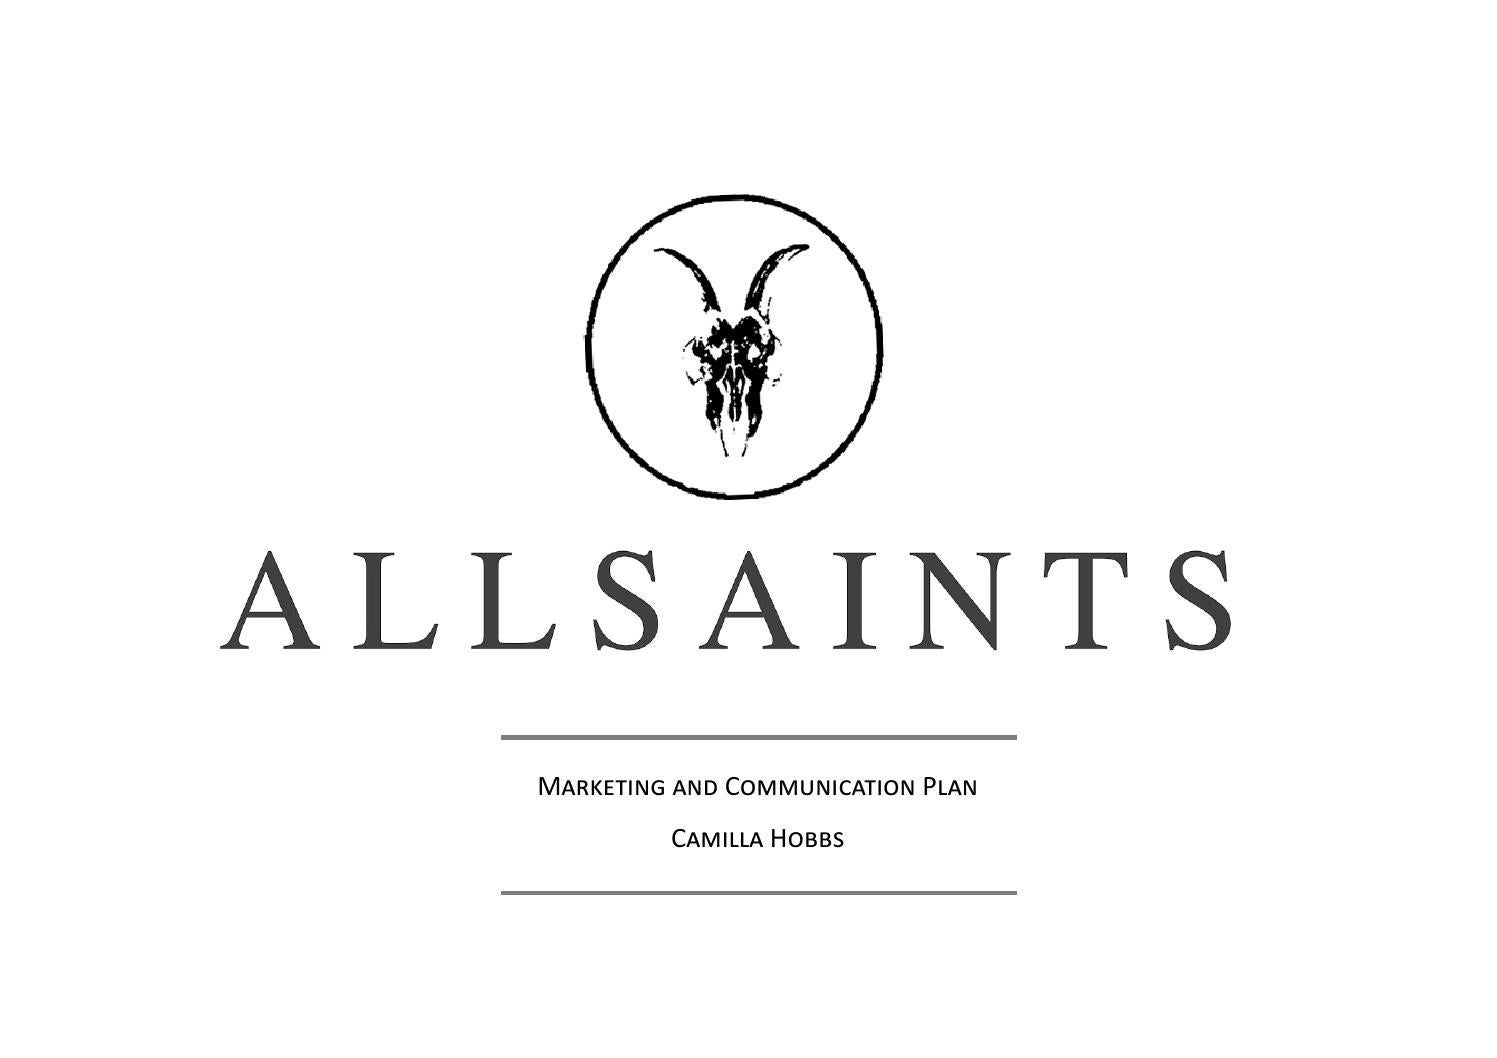 pest analysis of zara pestle analysis of singapore s promotions  case study and business analysis of valentino and simone rocha in 1st year allsaints marketing and